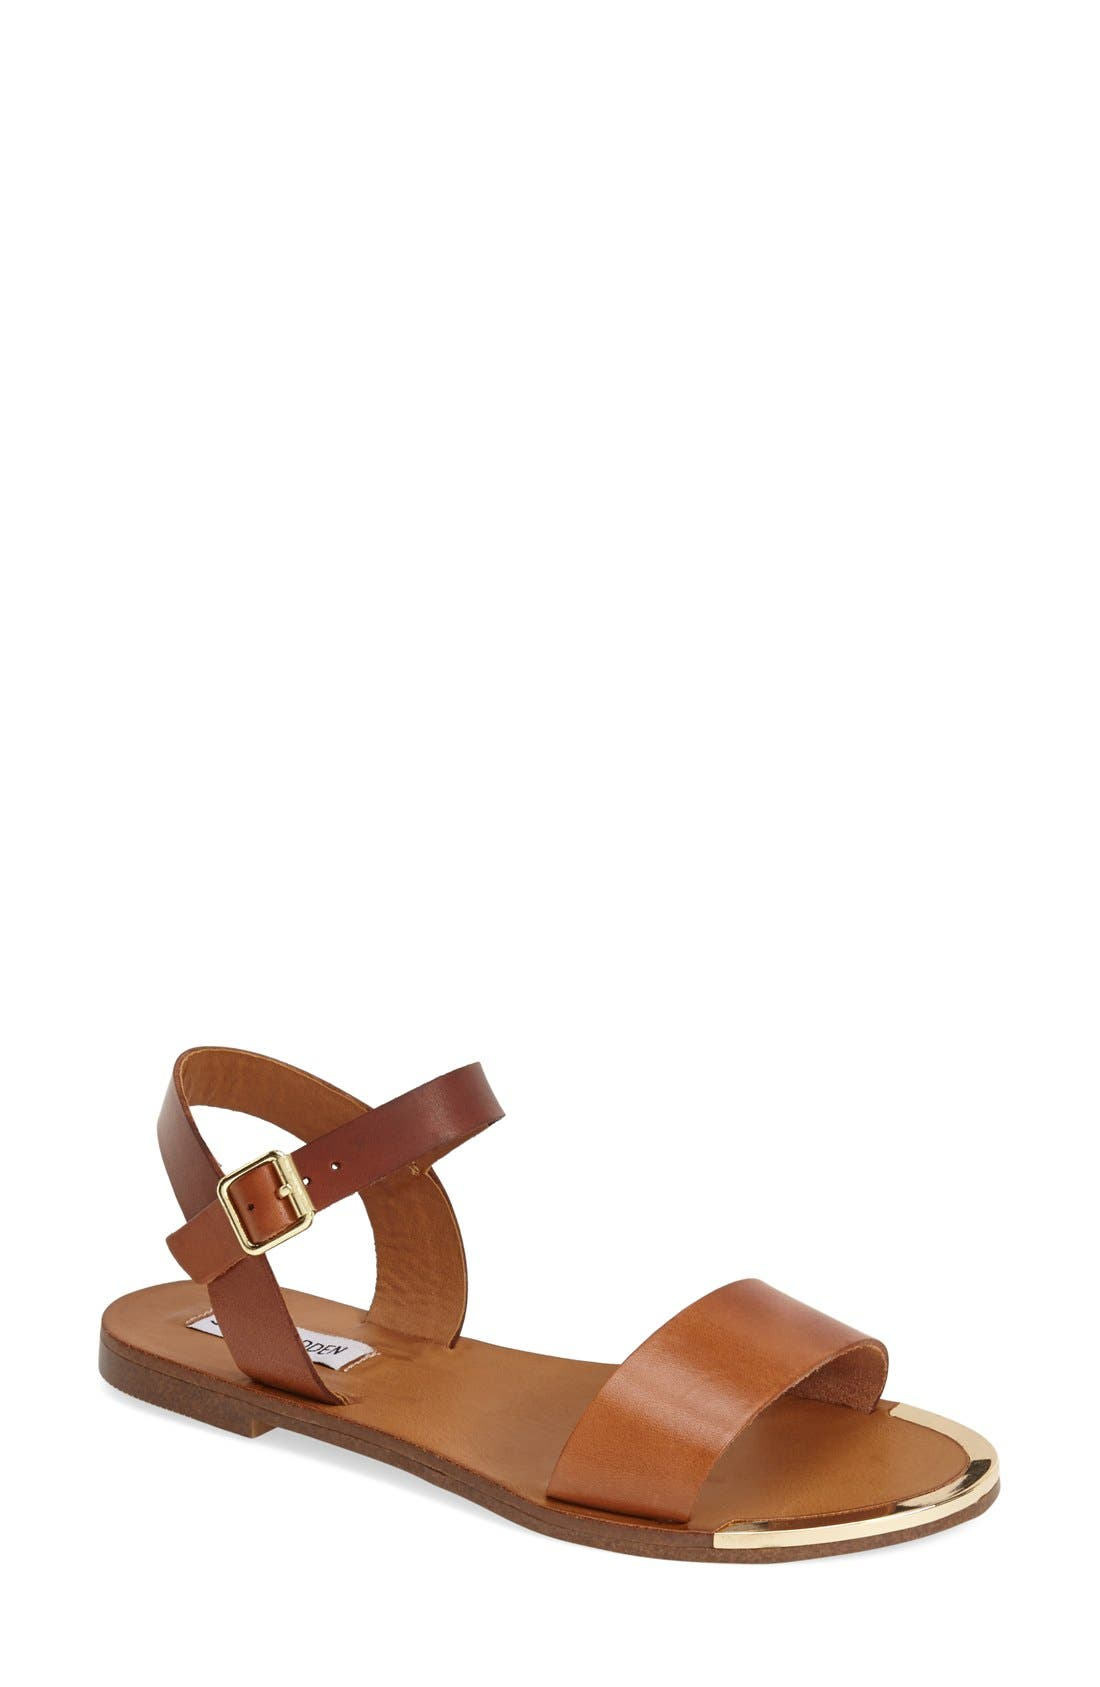 'Rillie' Two Strap Sandal,                         Main,                         color, Tan Leather